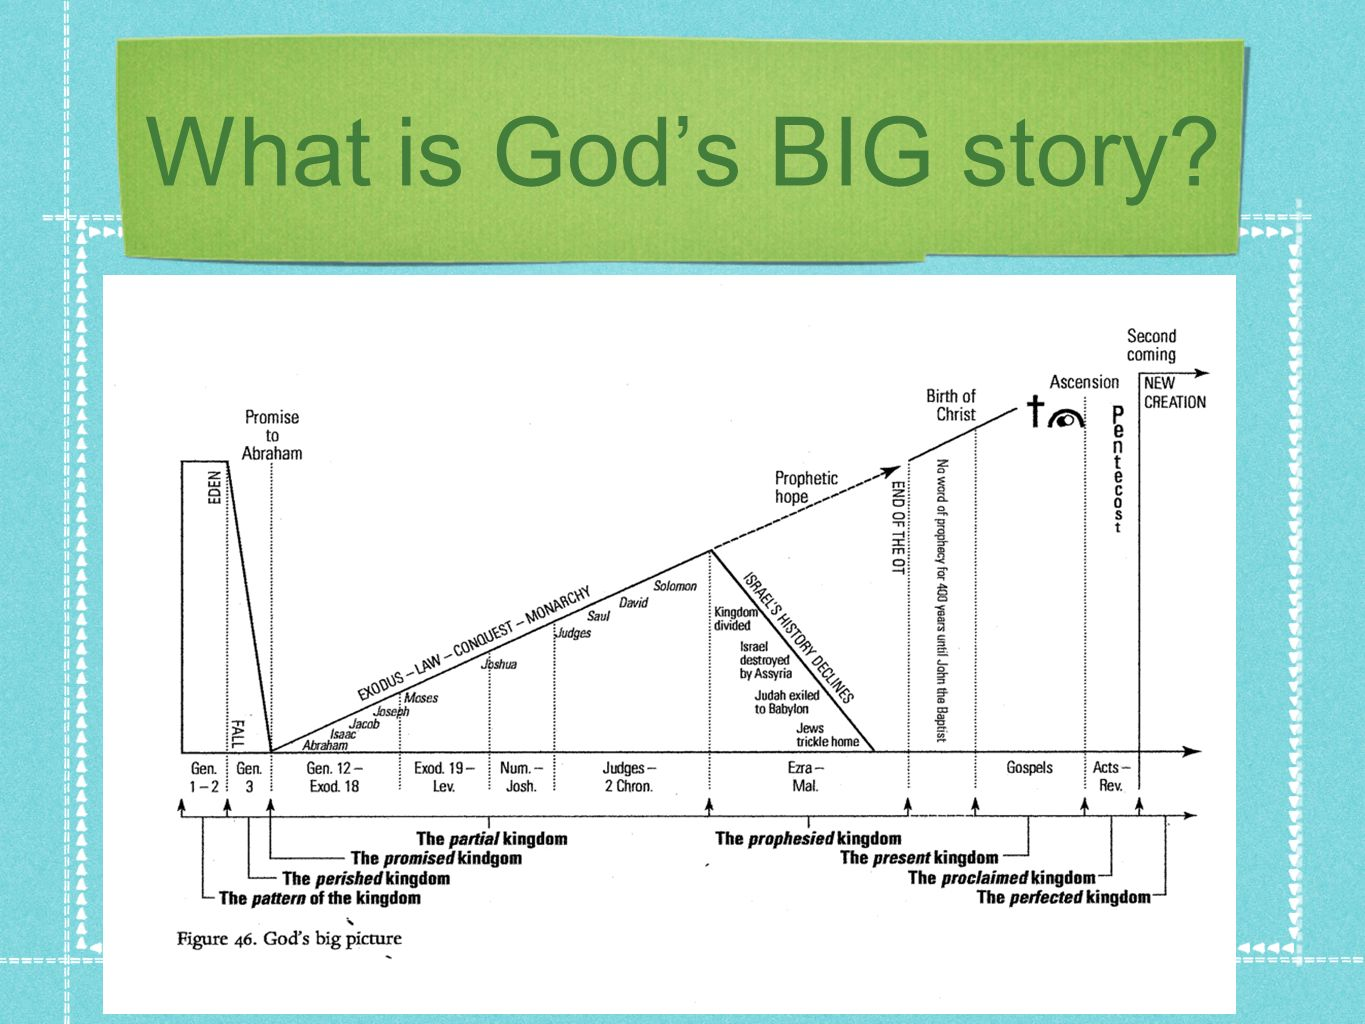 What is God's BIG story